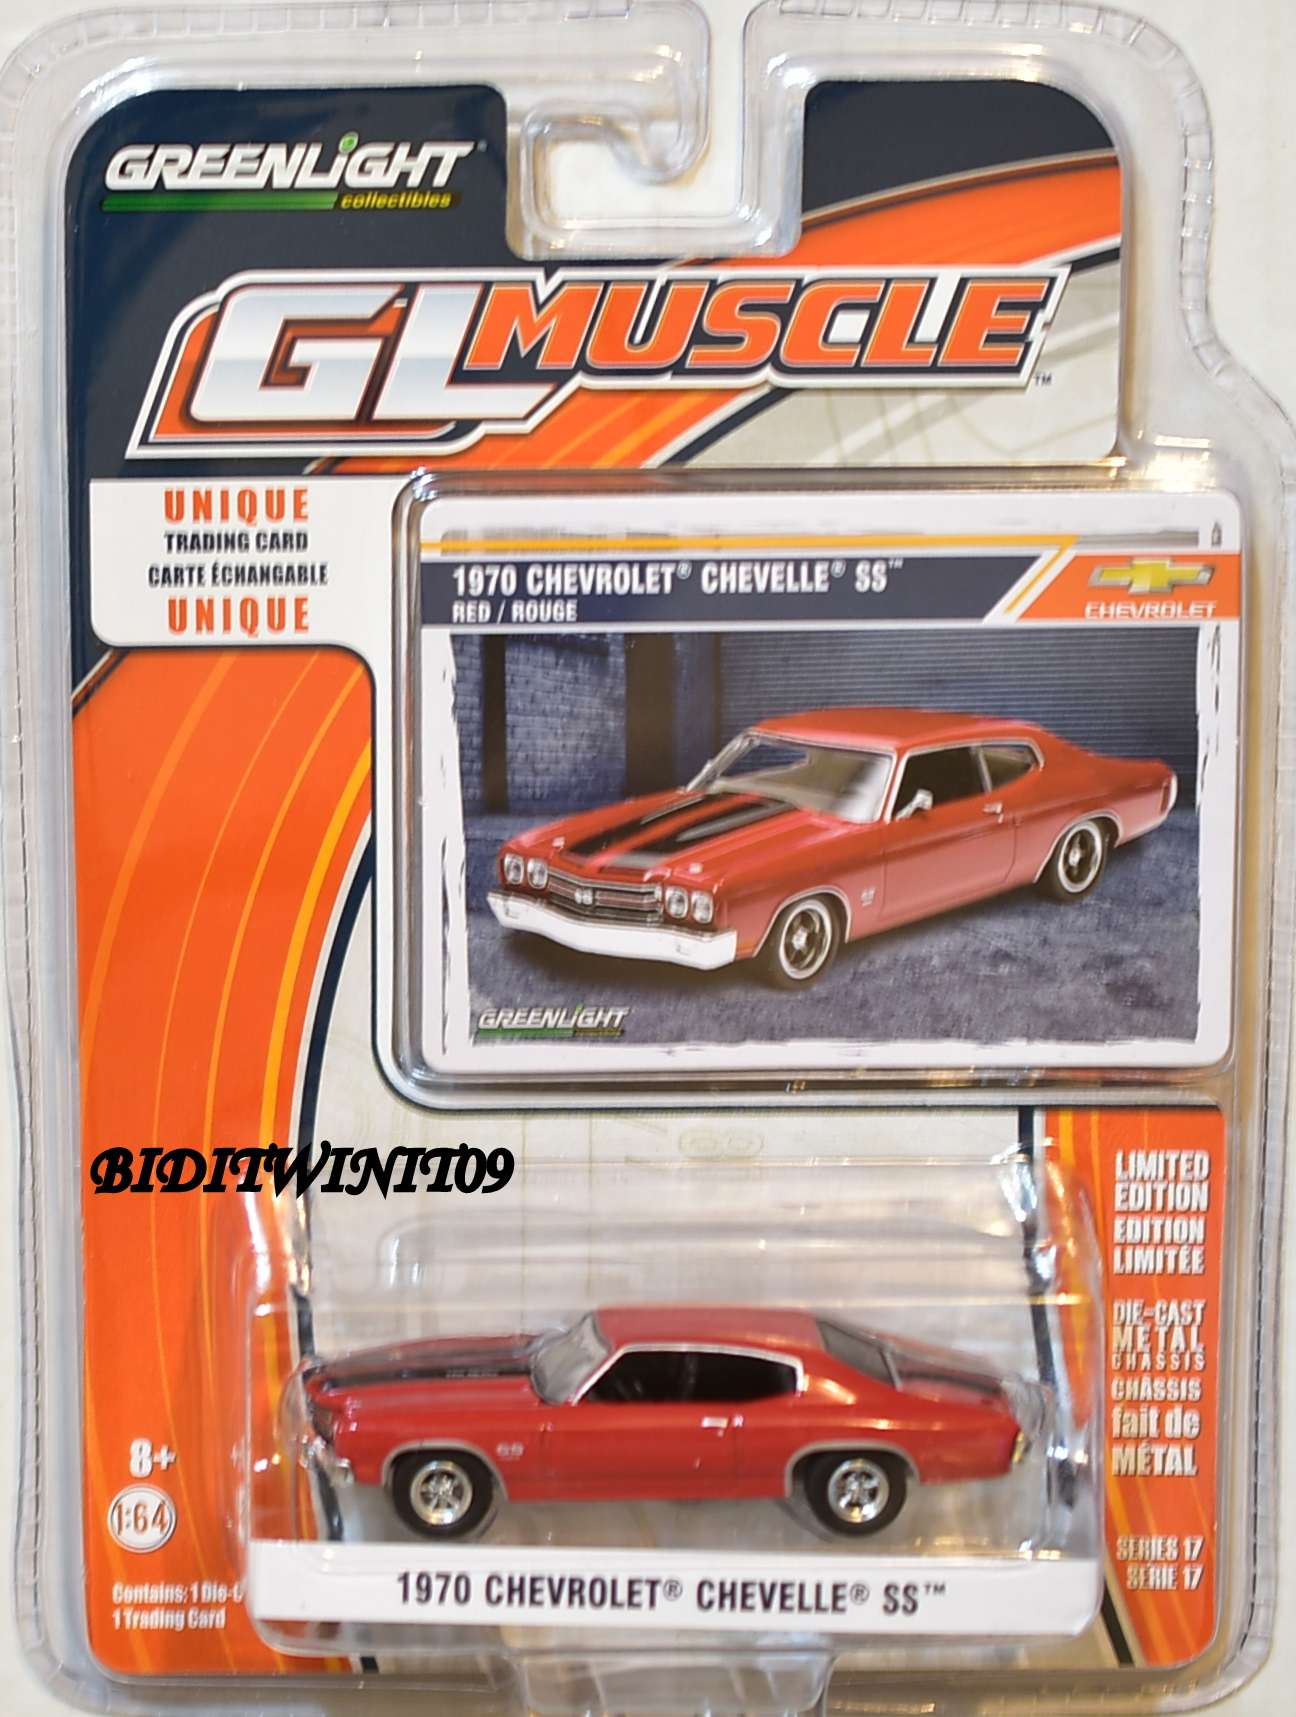 GREENLIGHT GLMUSCLE SERIES 17 1970 CHEVROLET CHEVELLE SS RED